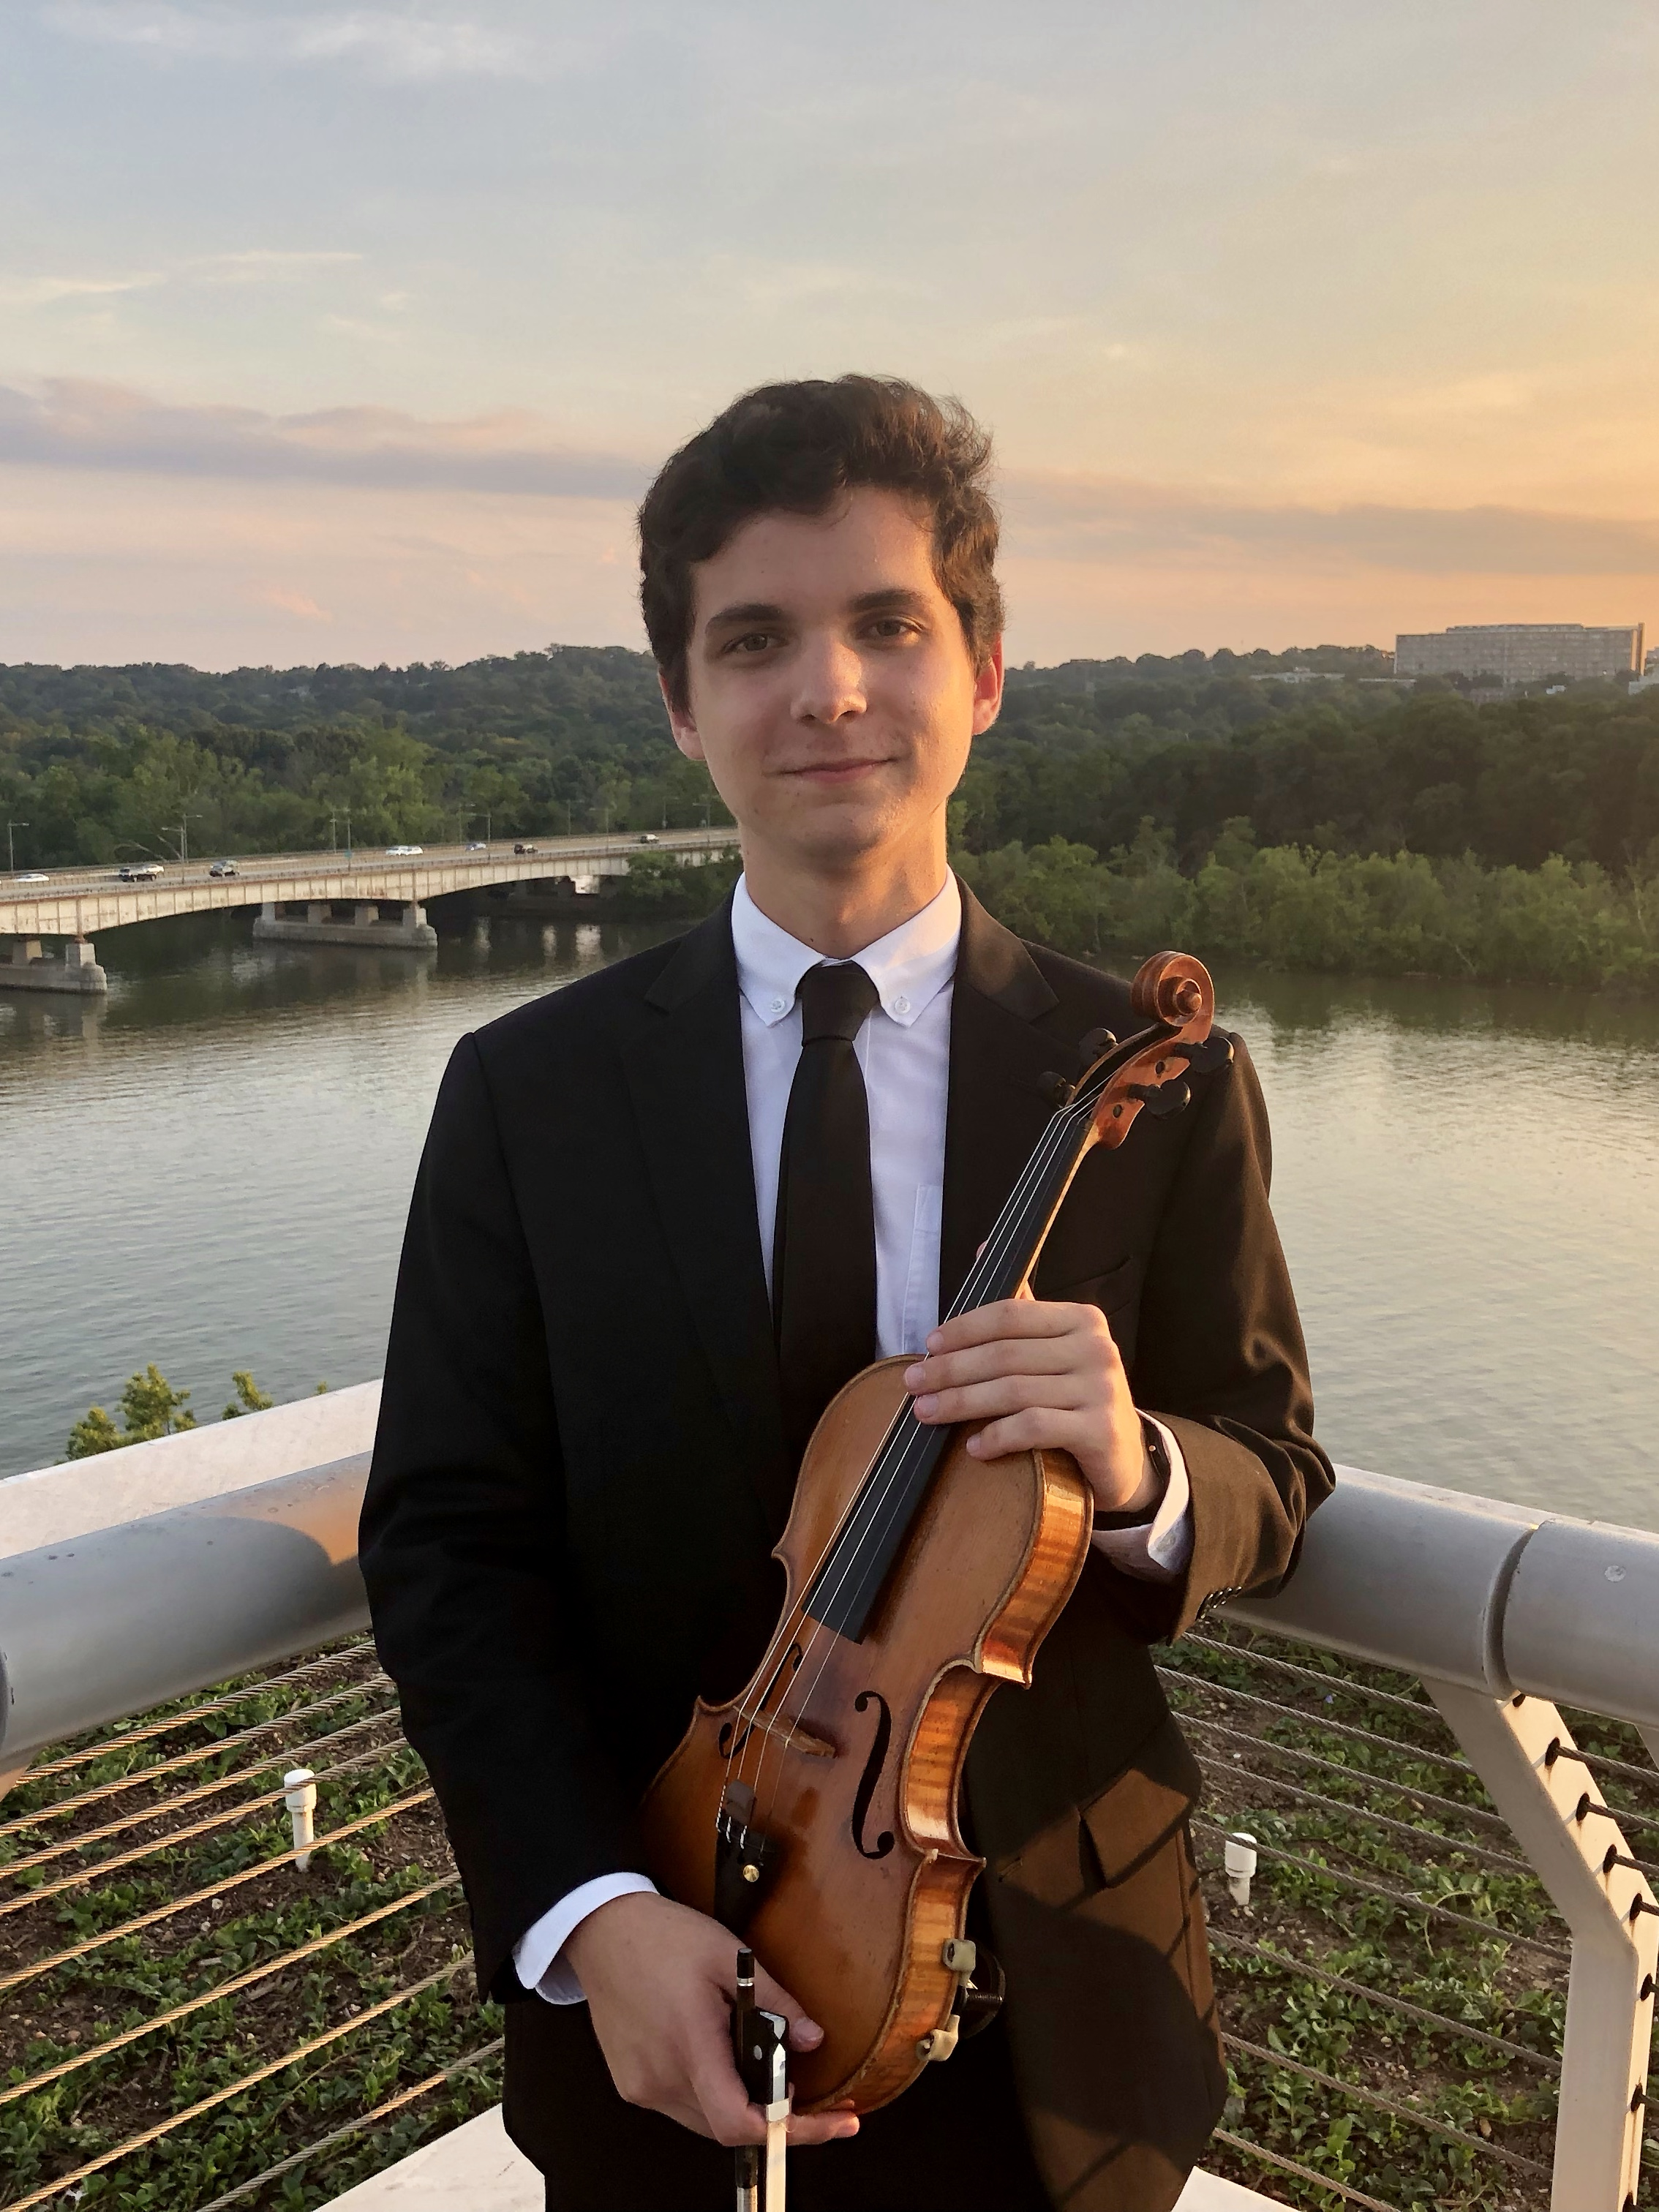 Andrew DeWeese , 17, is a rising senior at Charlotte Latin School and began studying violin at the age of 4. He has served as concertmaster in numerous orchestras, including the 2018 Honor Orchestra of America (HOOA) with Maestro Larry Livingston, the 2018 NC Western Regionals Honors Orchestra (WRO), the 2017 Philadelphia International Music Festival, and the Youth Orchestra of Charlotte. This past summer, Andrew spent four weeks as a guest artist at the John F. Kennedy Center for the Performing Arts in Washington, D.C. performing with the National Symphony's Summer Music Institute Orchestra in concerts featuring Mahler's Fourth Symphony and Strauss' Don Juan. He has also served as Assistant Concertmaster of the Youth Orchestra of Charlotte (YOC) since 2018 and as a first violinist with the 2019 HOOA, 2017 NC All-State, 2017 WRO, YOC, and Charlotte Symphony Youth Orchestra. Andrew studies with Dr. Ernest Pereira, violinist with the Charlotte Symphony and music director of the YOC, as well as with Marc Rovetti, Assistant Concertmaster of the Philadelphia Orchestra.  Especially passionate about chamber music, Andrew co-founded the Charlotte Youth String Quartet (CYSQ) in 2017 and the Charlotte Piano Trio in 2019 to address the lack of professional chamber music in the Charlotte Metropolitan Area. With the CYSQ, he organized ten community benefit concerts featuring full quartets from a variety of composers, time periods, and styles throughout the repertoire, including those of Debussy, Tchaikovsky's Third, Shostakovich's Eighth, Mozart's Third Prussian, and Villa Lobos' Fourth. The Charlotte Piano Trio put on its first concert in the summer of 2019, featuring Brahms' First Piano Trio, Shostakovich's Second, and the North Carolina premiere of Servais' Grand Duo de Concert No. 2 for Violin and Cello. Andrew has vigorously sought to make more known the repertoire of violin and cello duos, having performed Ravel's Duo over twenty times as well as duos of Kodály, Villa Lobos, and Bach.  Andrew has also performed in orchestras on tour at the Sydney Opera House in Australia, New York's Carnegie Hall, New York, as well as throughout North and South Carolina, Pennsylvania, Florida, and Indiana. He participated in a promotional video filmed and broadcasted by the NFL's Carolina Panthers and is a percussionist in the Charlotte Latin School Pep Band.  Outside music, Andrew enjoys studying classical languages and chemistry. He has spent two summers working with Dr. Socha at Illium Labs/Queens University and has co-authored a paper published in the Journal of Industrial & Engineering Chemistry. He studies Attic Greek, Homeric Greek, and Latin, and especially loves the works of Thucydides, Vergil, and Plato. Andrew is Student Body President of Charlotte Latin School and serves regularly on the school's Model United Nations team at conferences across the nation.